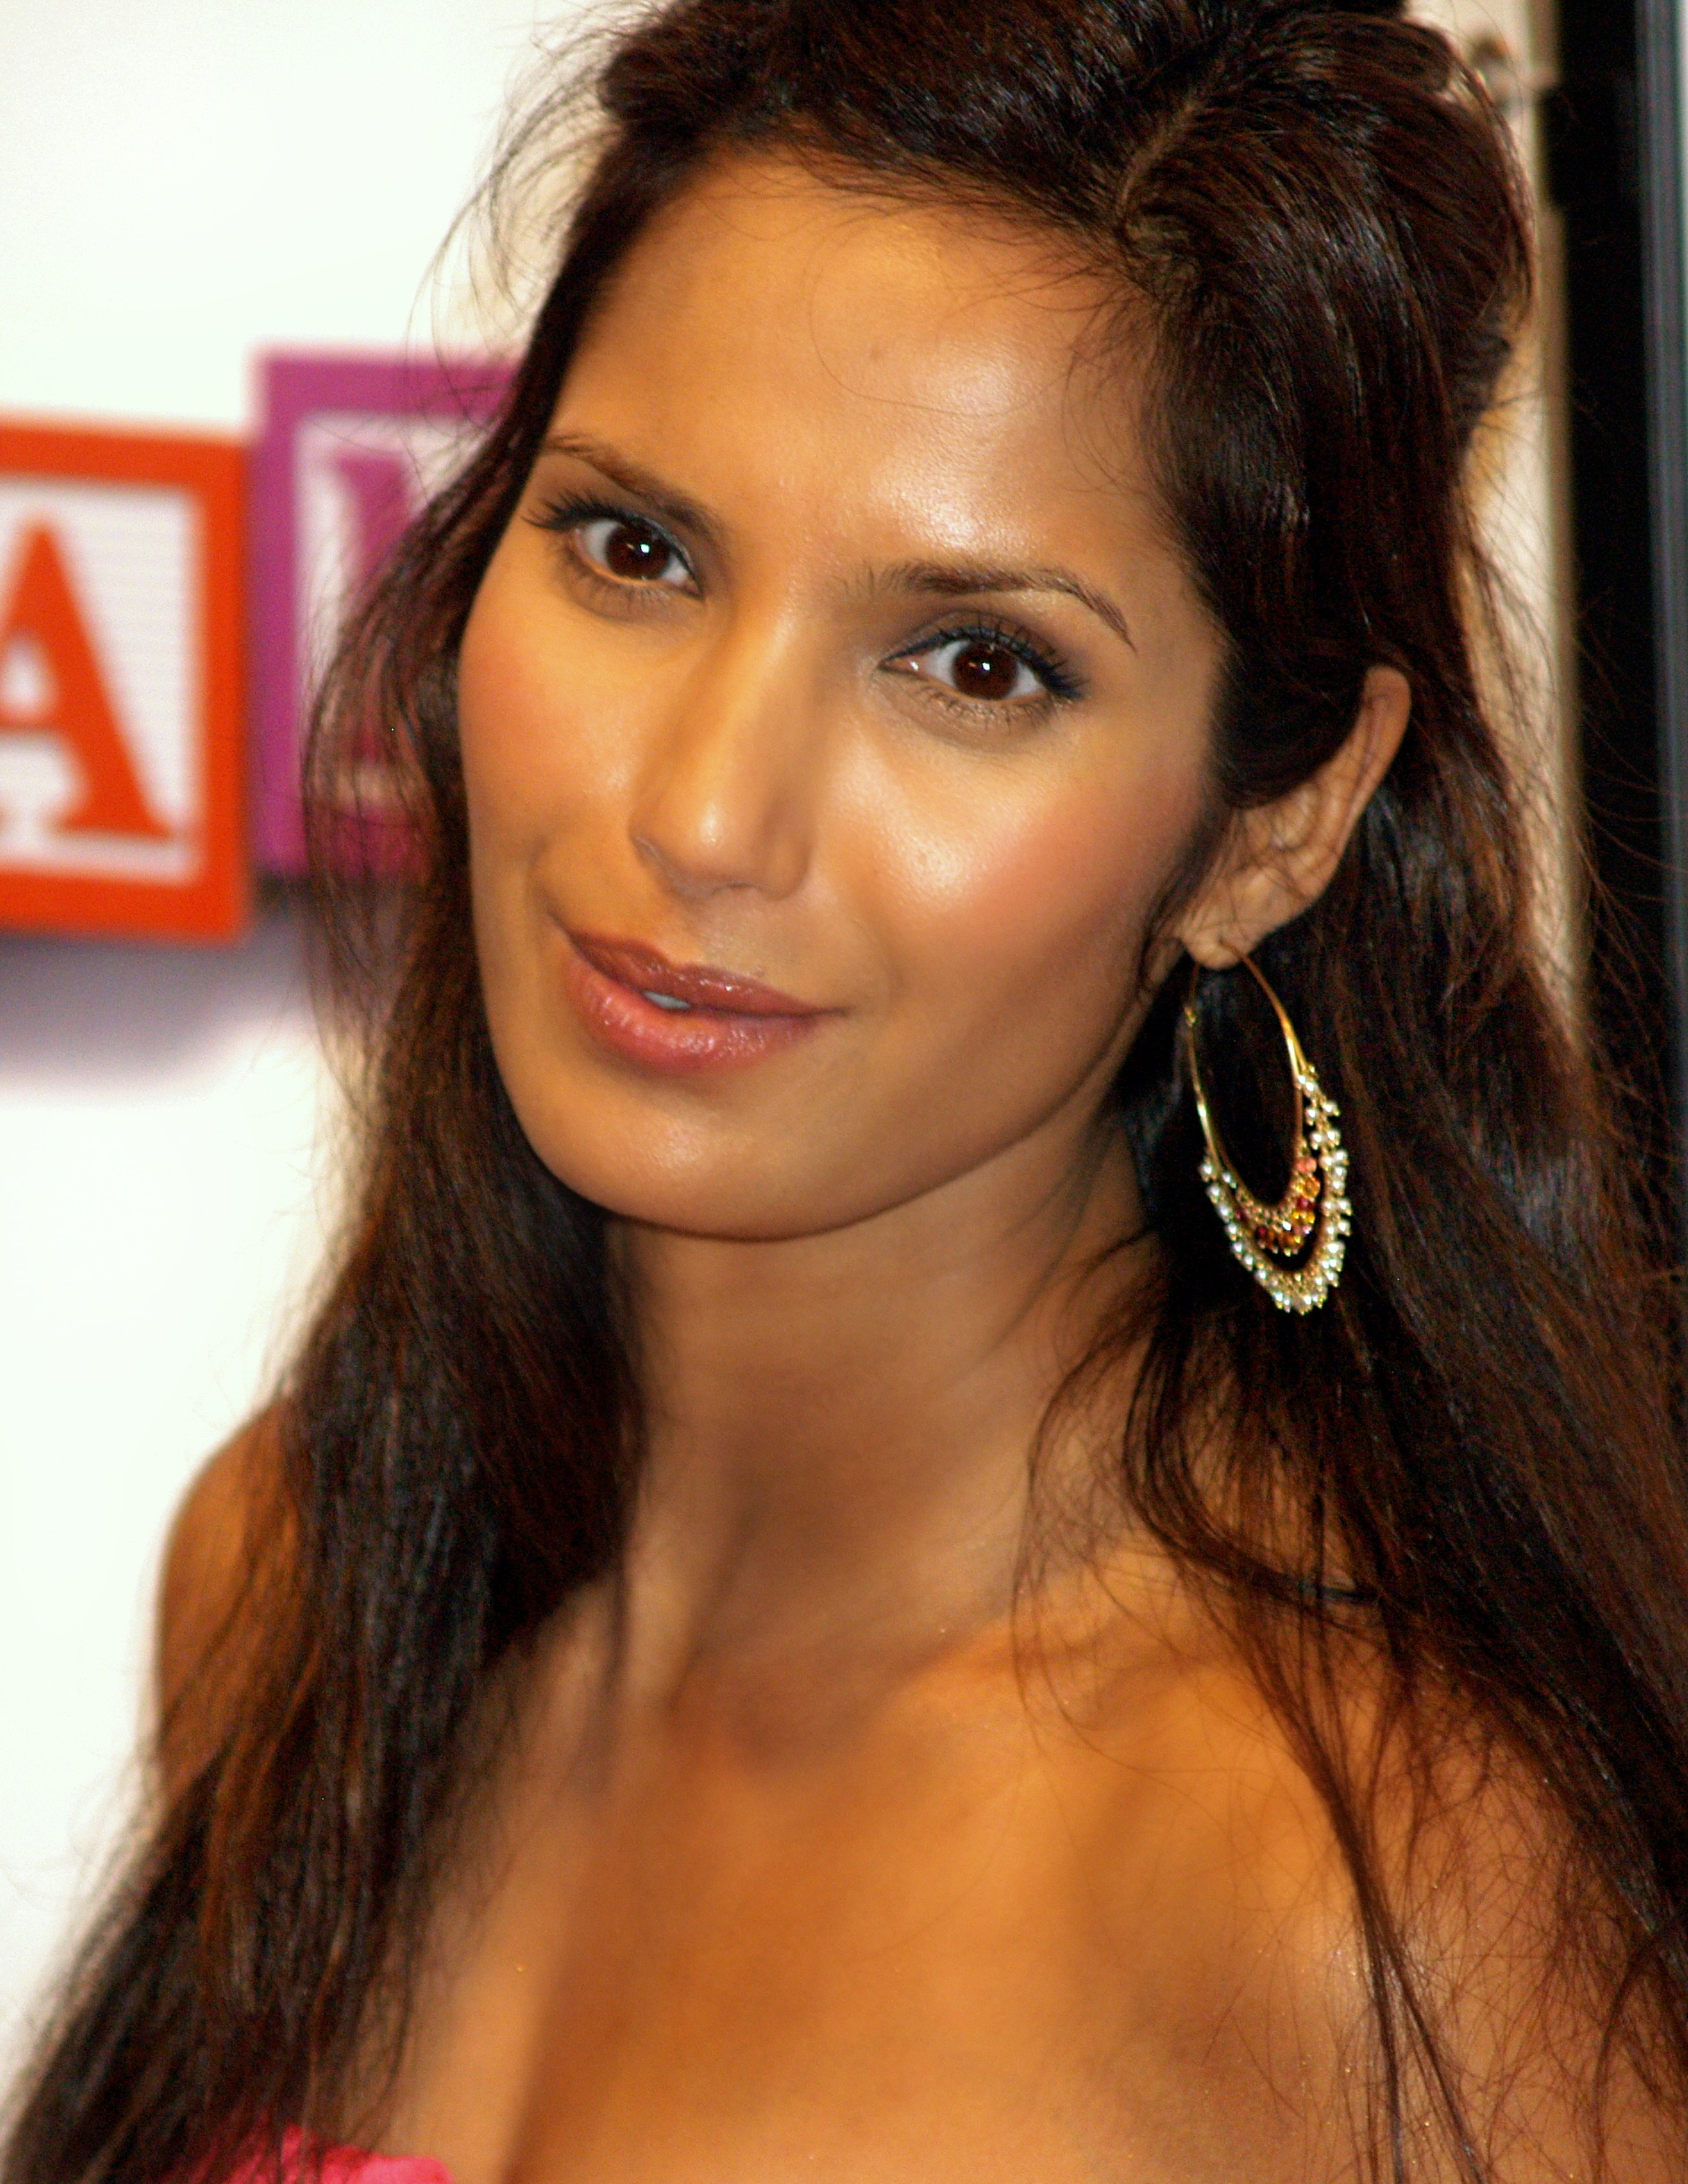 Celebrity Padma Lakshmi naked (82 photos), Pussy, Is a cute, Instagram, legs 2020